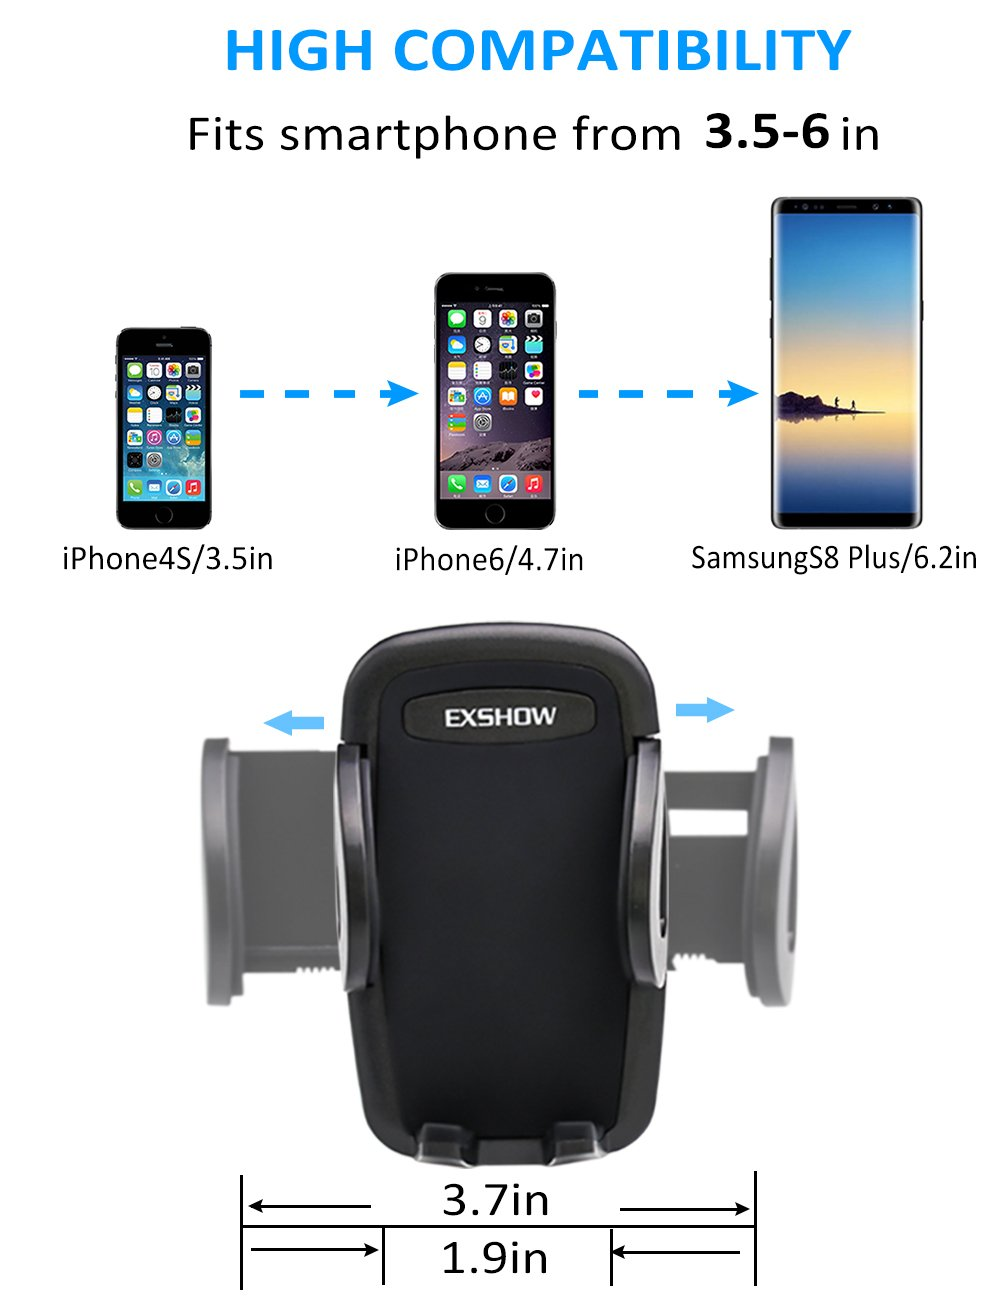 EXSHOW Car Mount,Universal Windshield Dashboard 8.5 inch Long Arm Car Phone Mount for iPhone X/8/7/6S/6 Plus/5S/5, Samsung Galaxy S6 S5, Nexus 5X/6P, LG, HTC and All Smartphones 3.5-6 inch(Black) by EXSHOW (Image #3)